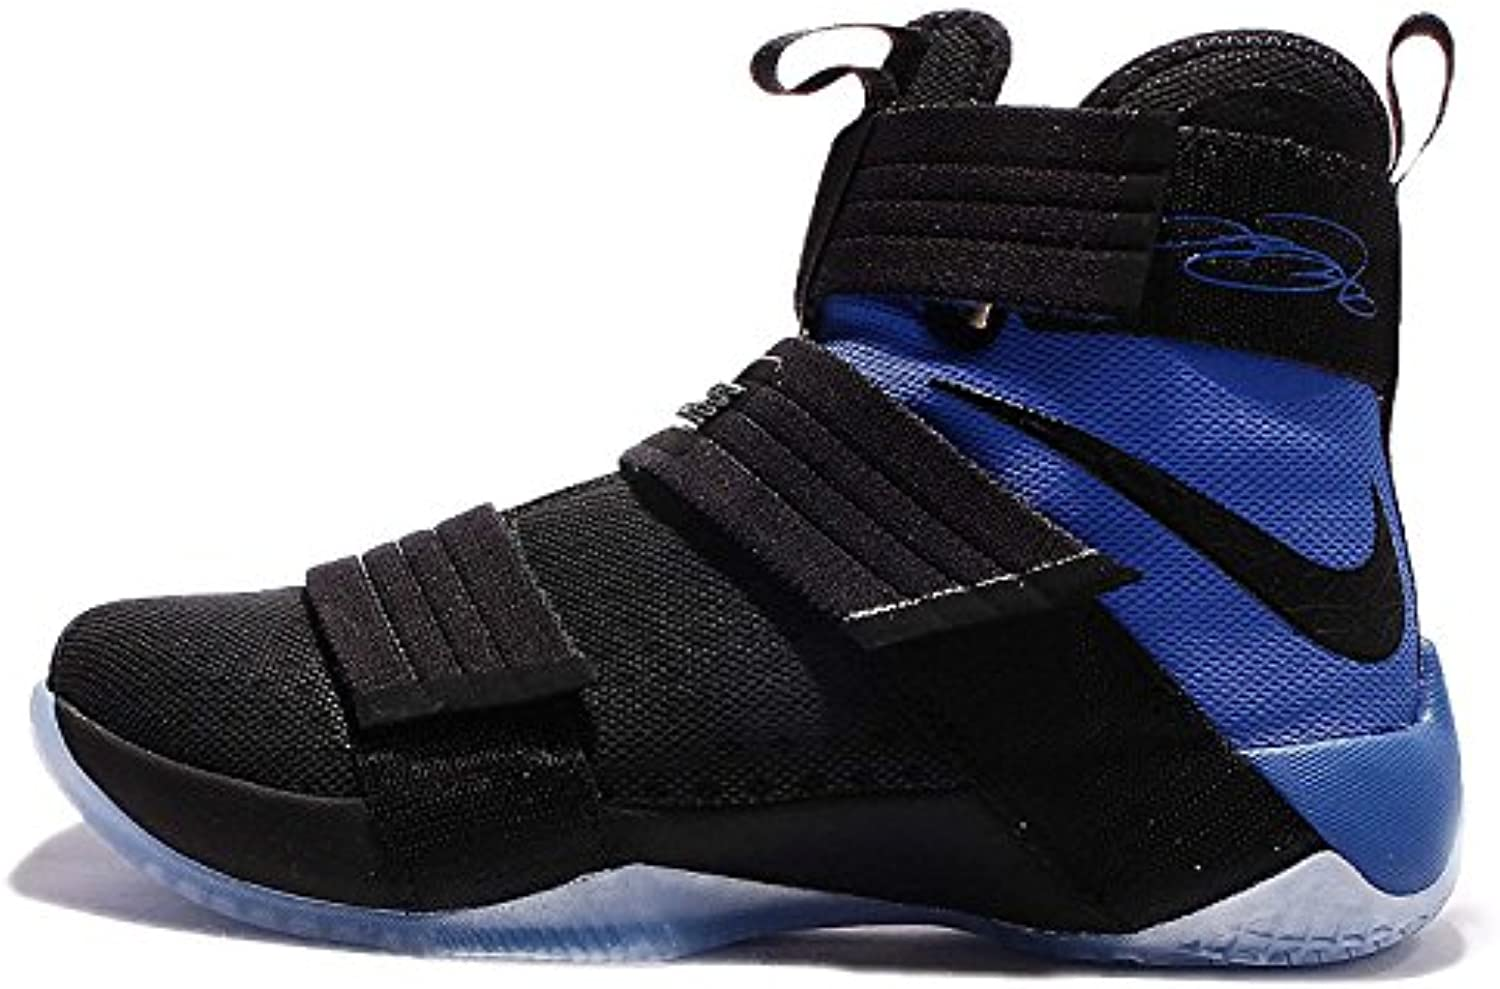 Nike Lebron Soldier 10 Mens Basketball Shoes, Black/Black-game Royal, 44 D(M) EU/9 D(M) UK